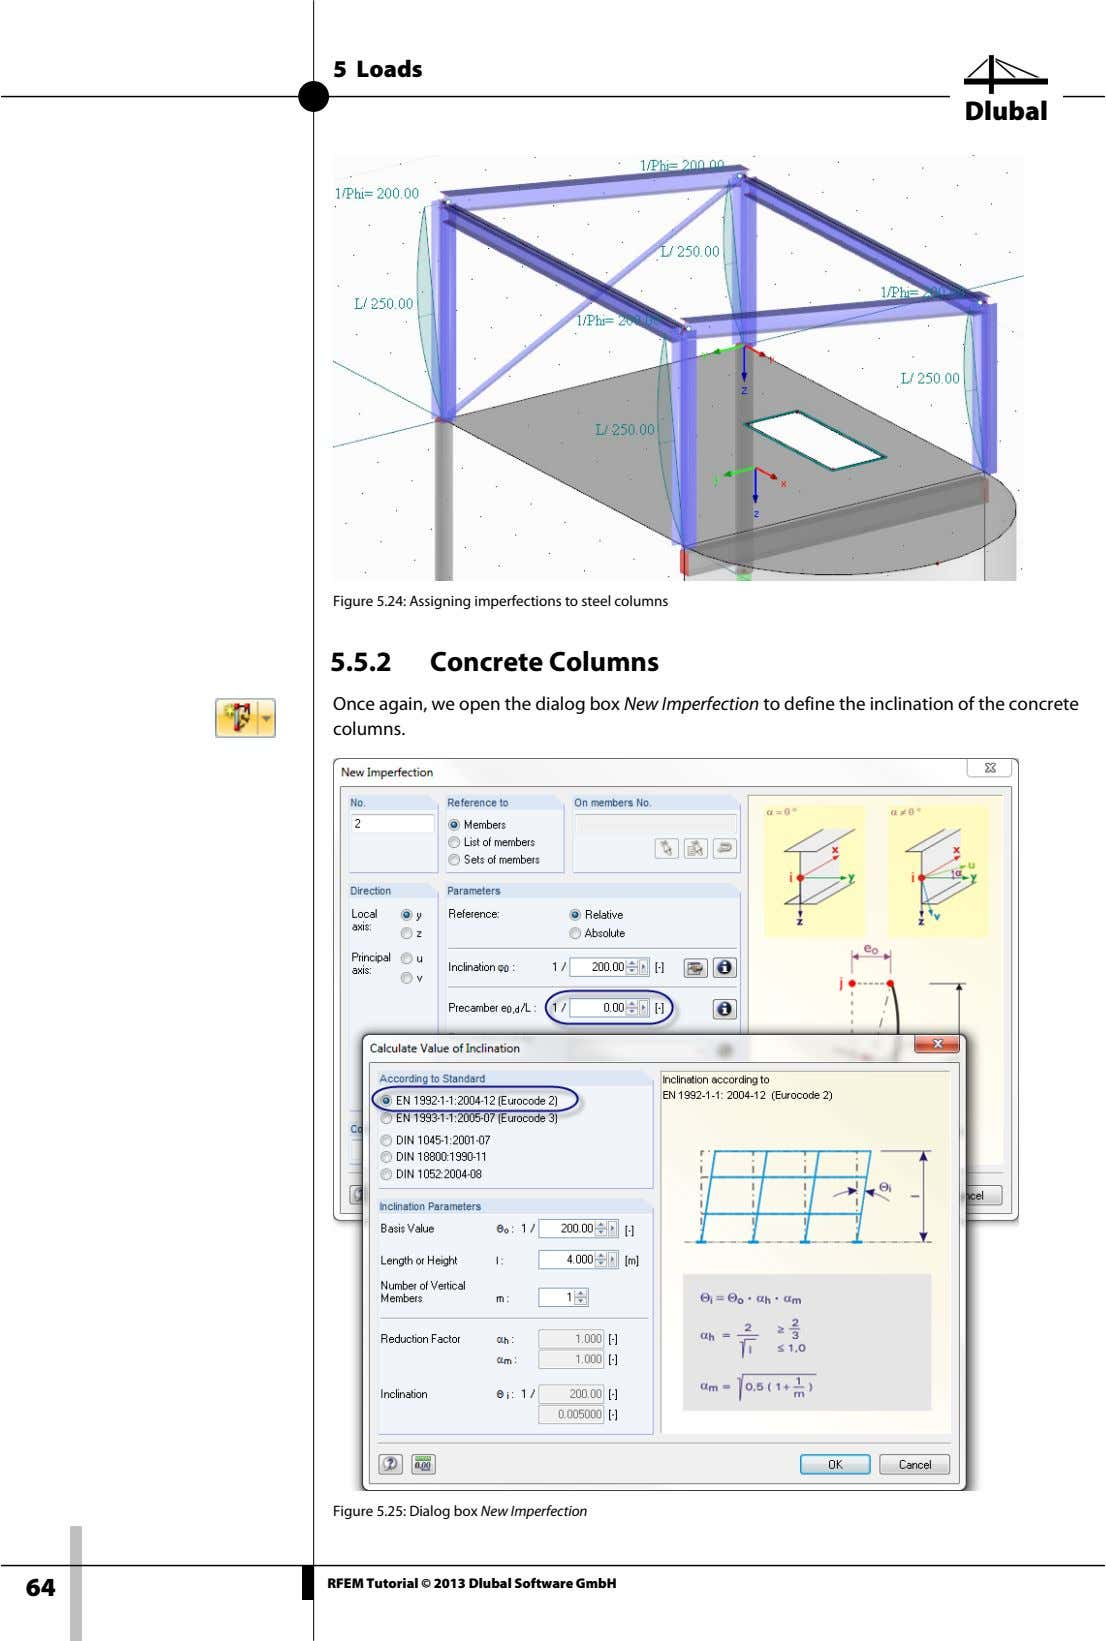 5 Loads Dlubal Figure 5.24: Assigning imperfections to steel columns 5.5.2 Concrete Columns Once again,